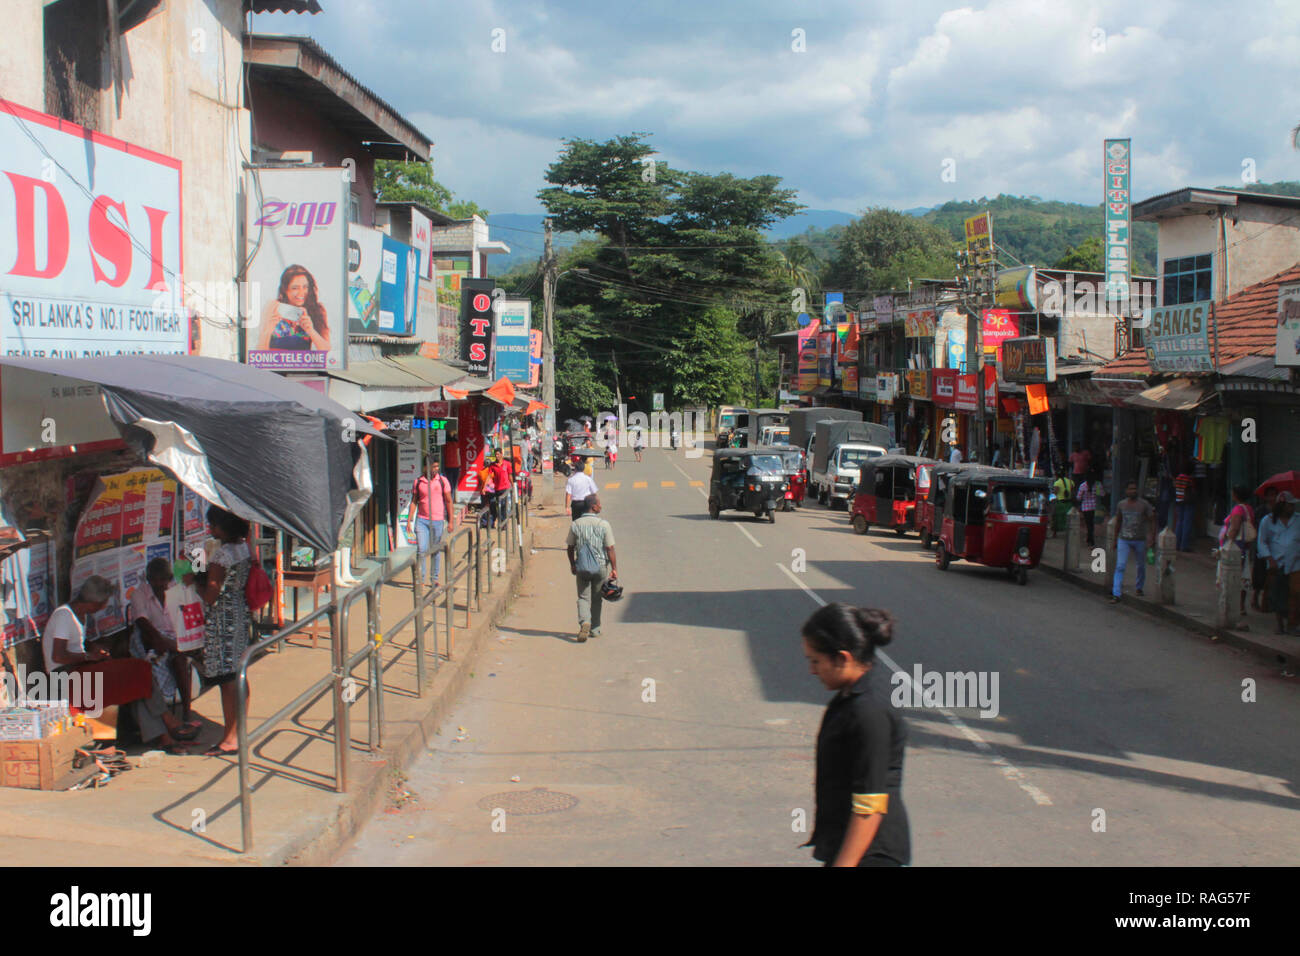 Straße in Sri Lanka - Stock Image